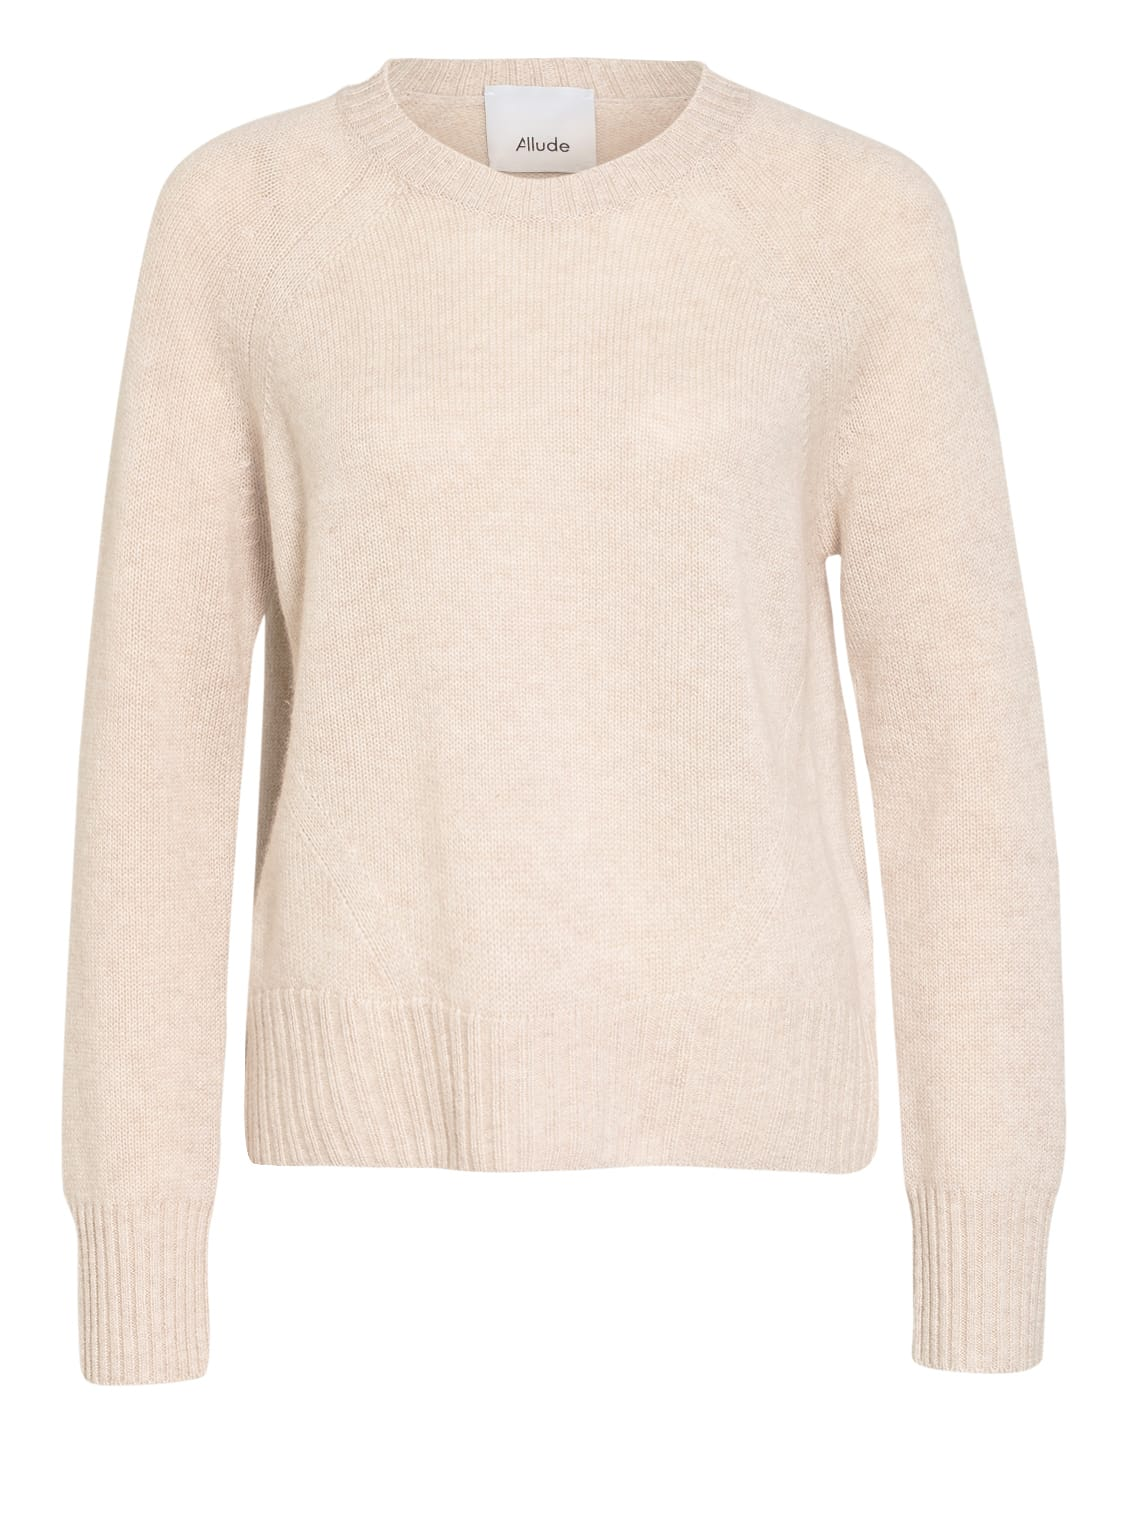 Image of Allude Cashmere-Pullover beige